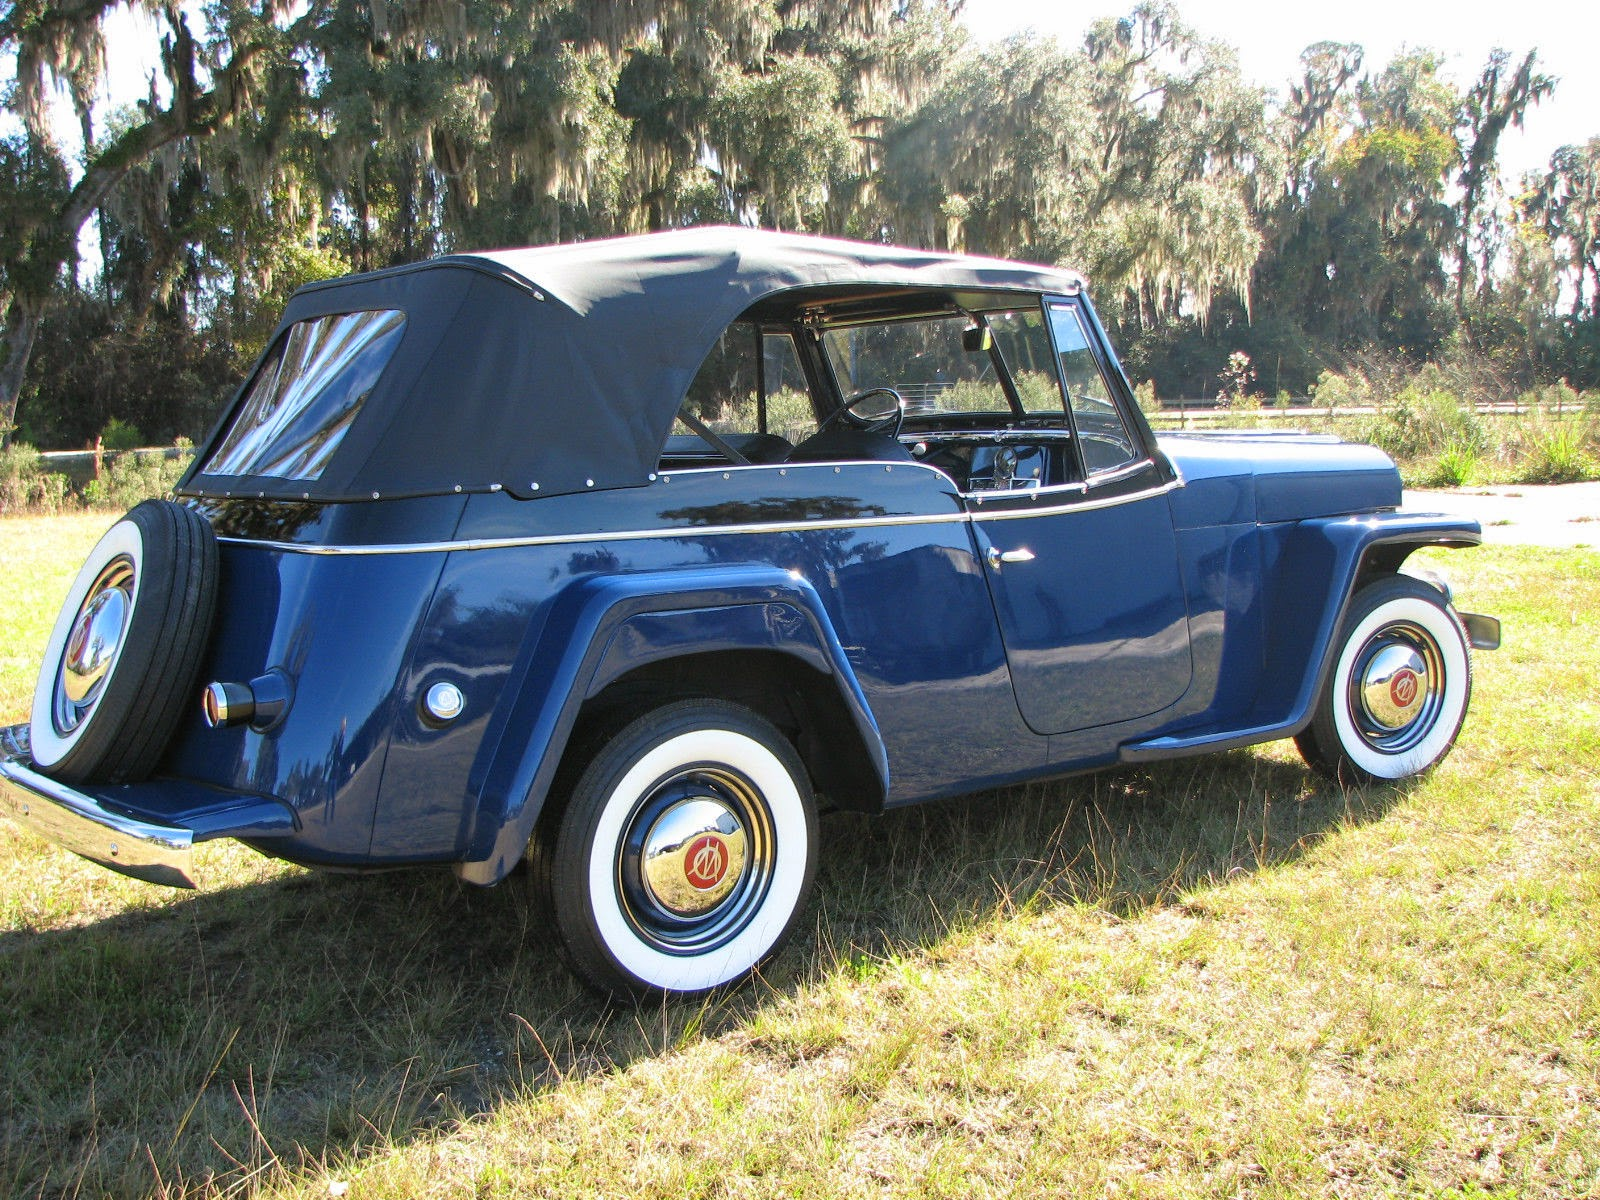 Willys Car: All American Classic Cars: 1950 Willys Jeepster